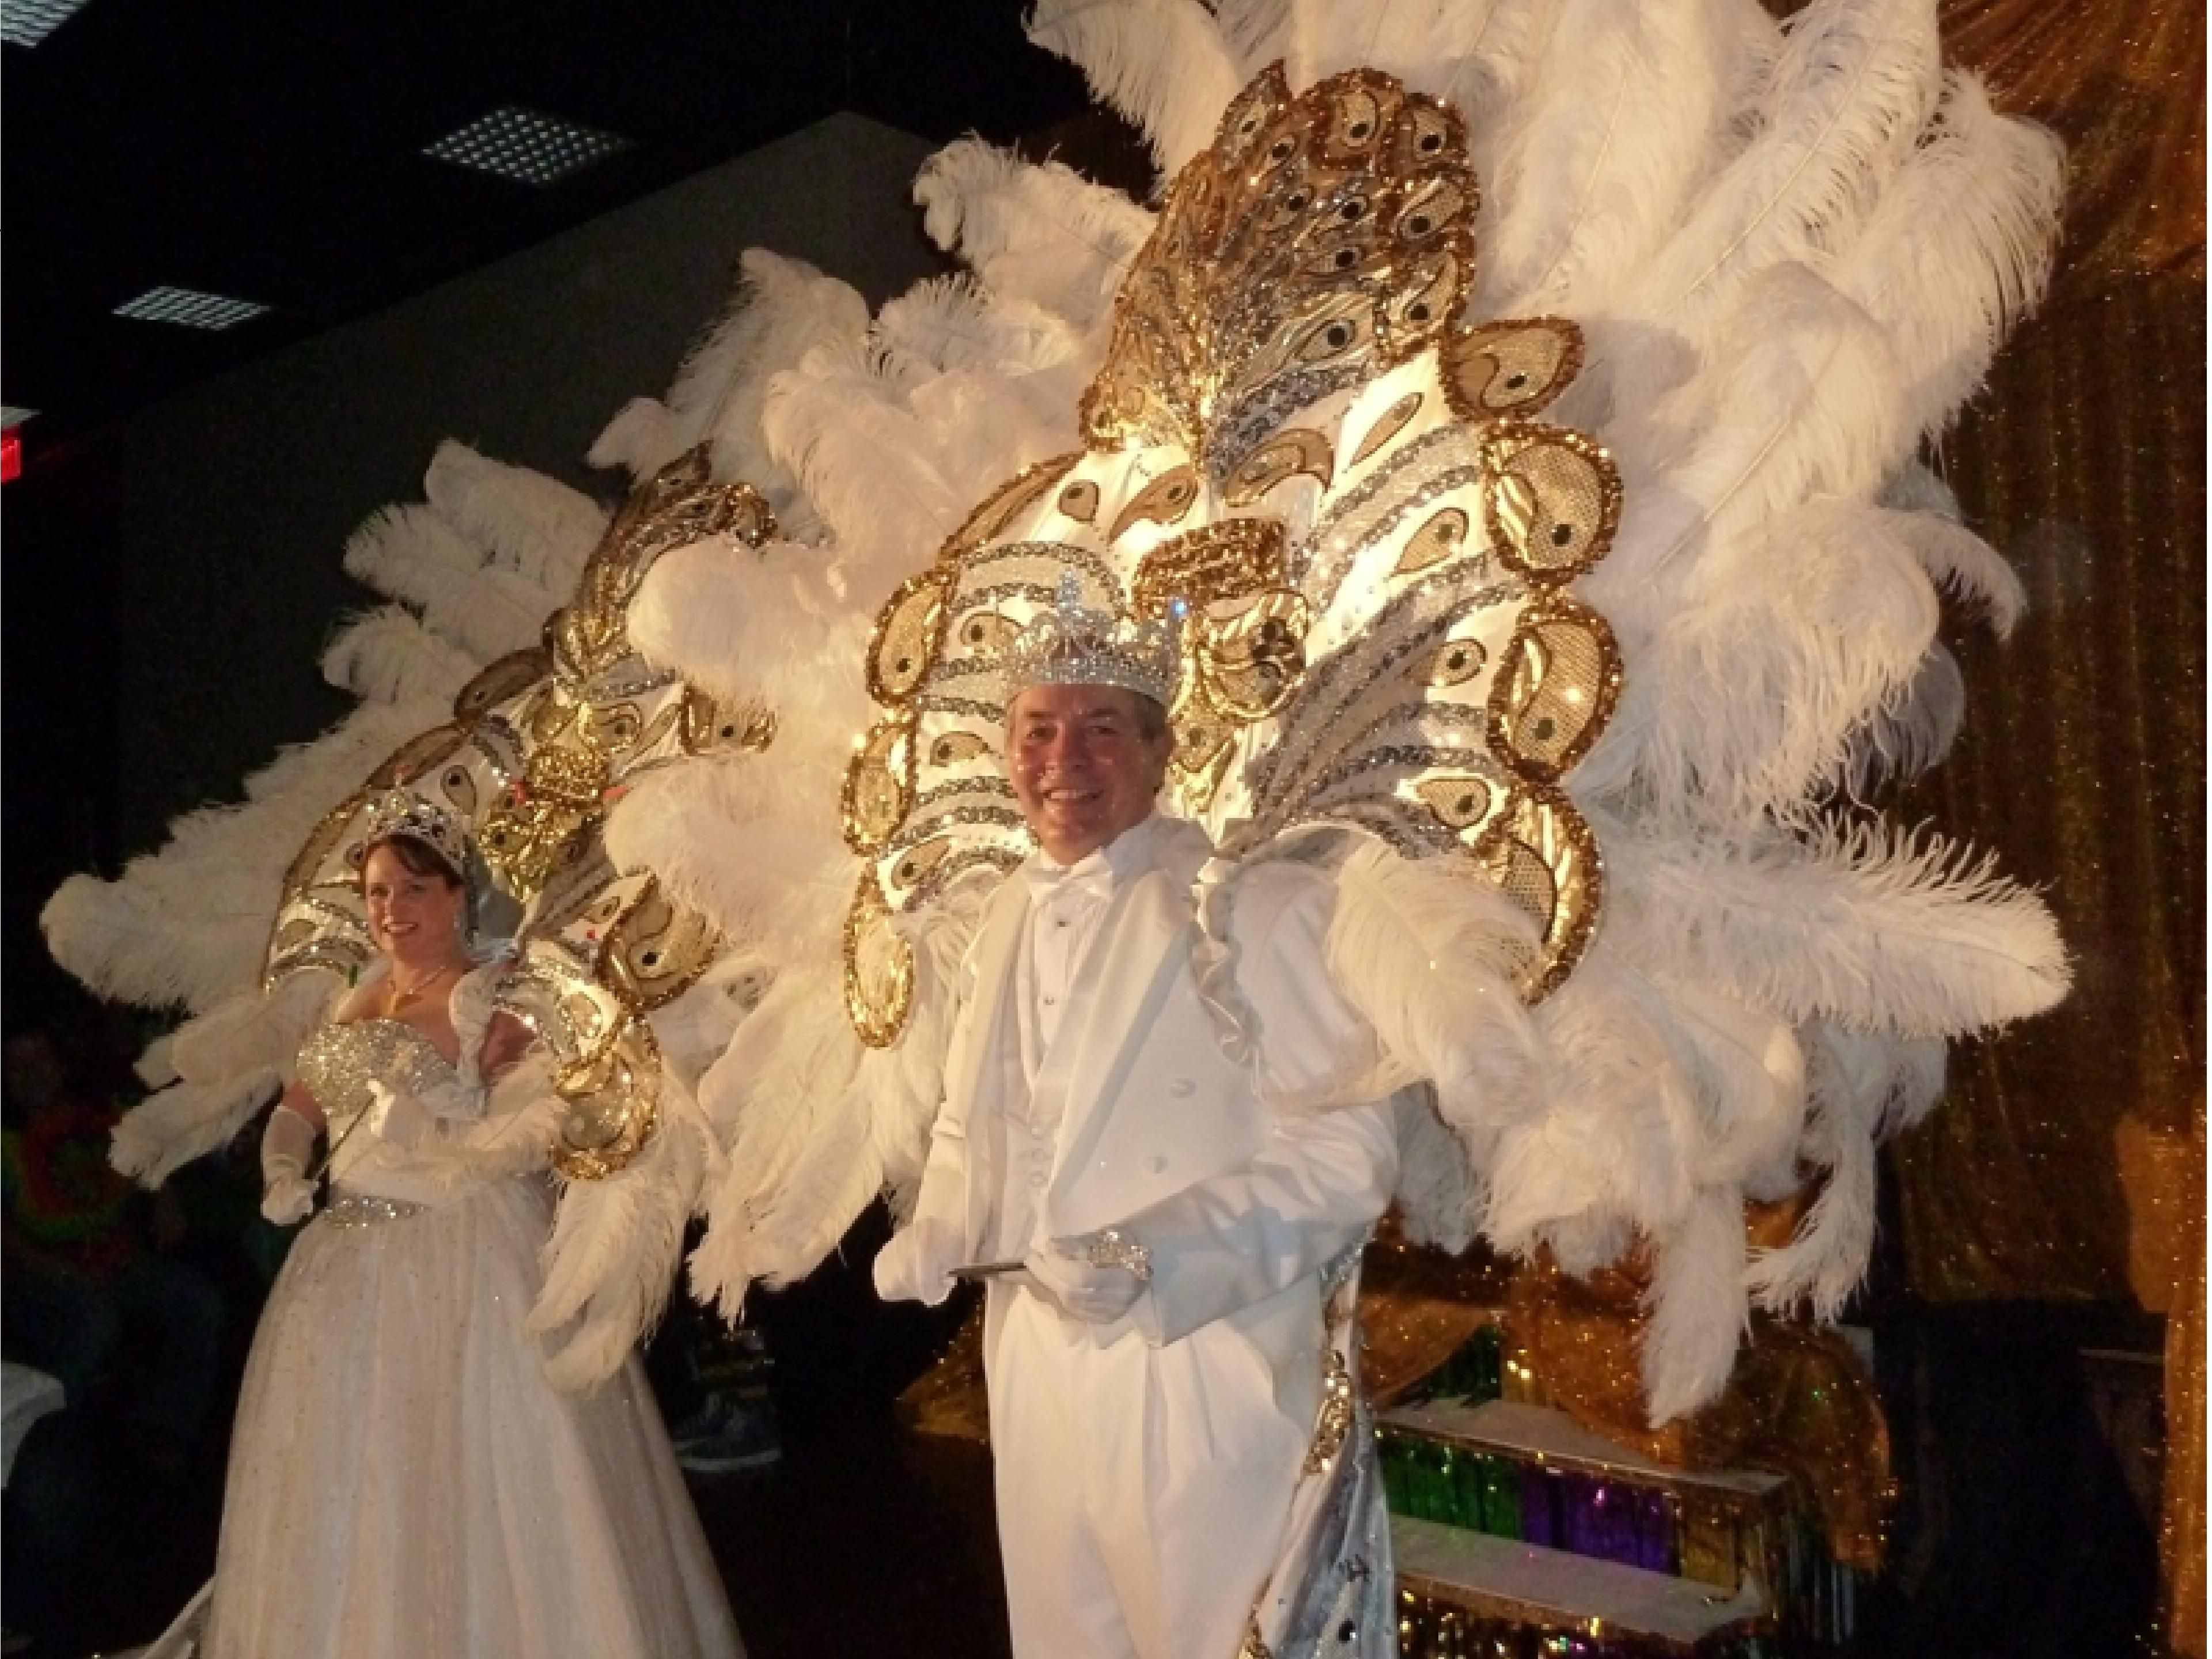 Mardi Gras - King & Queen